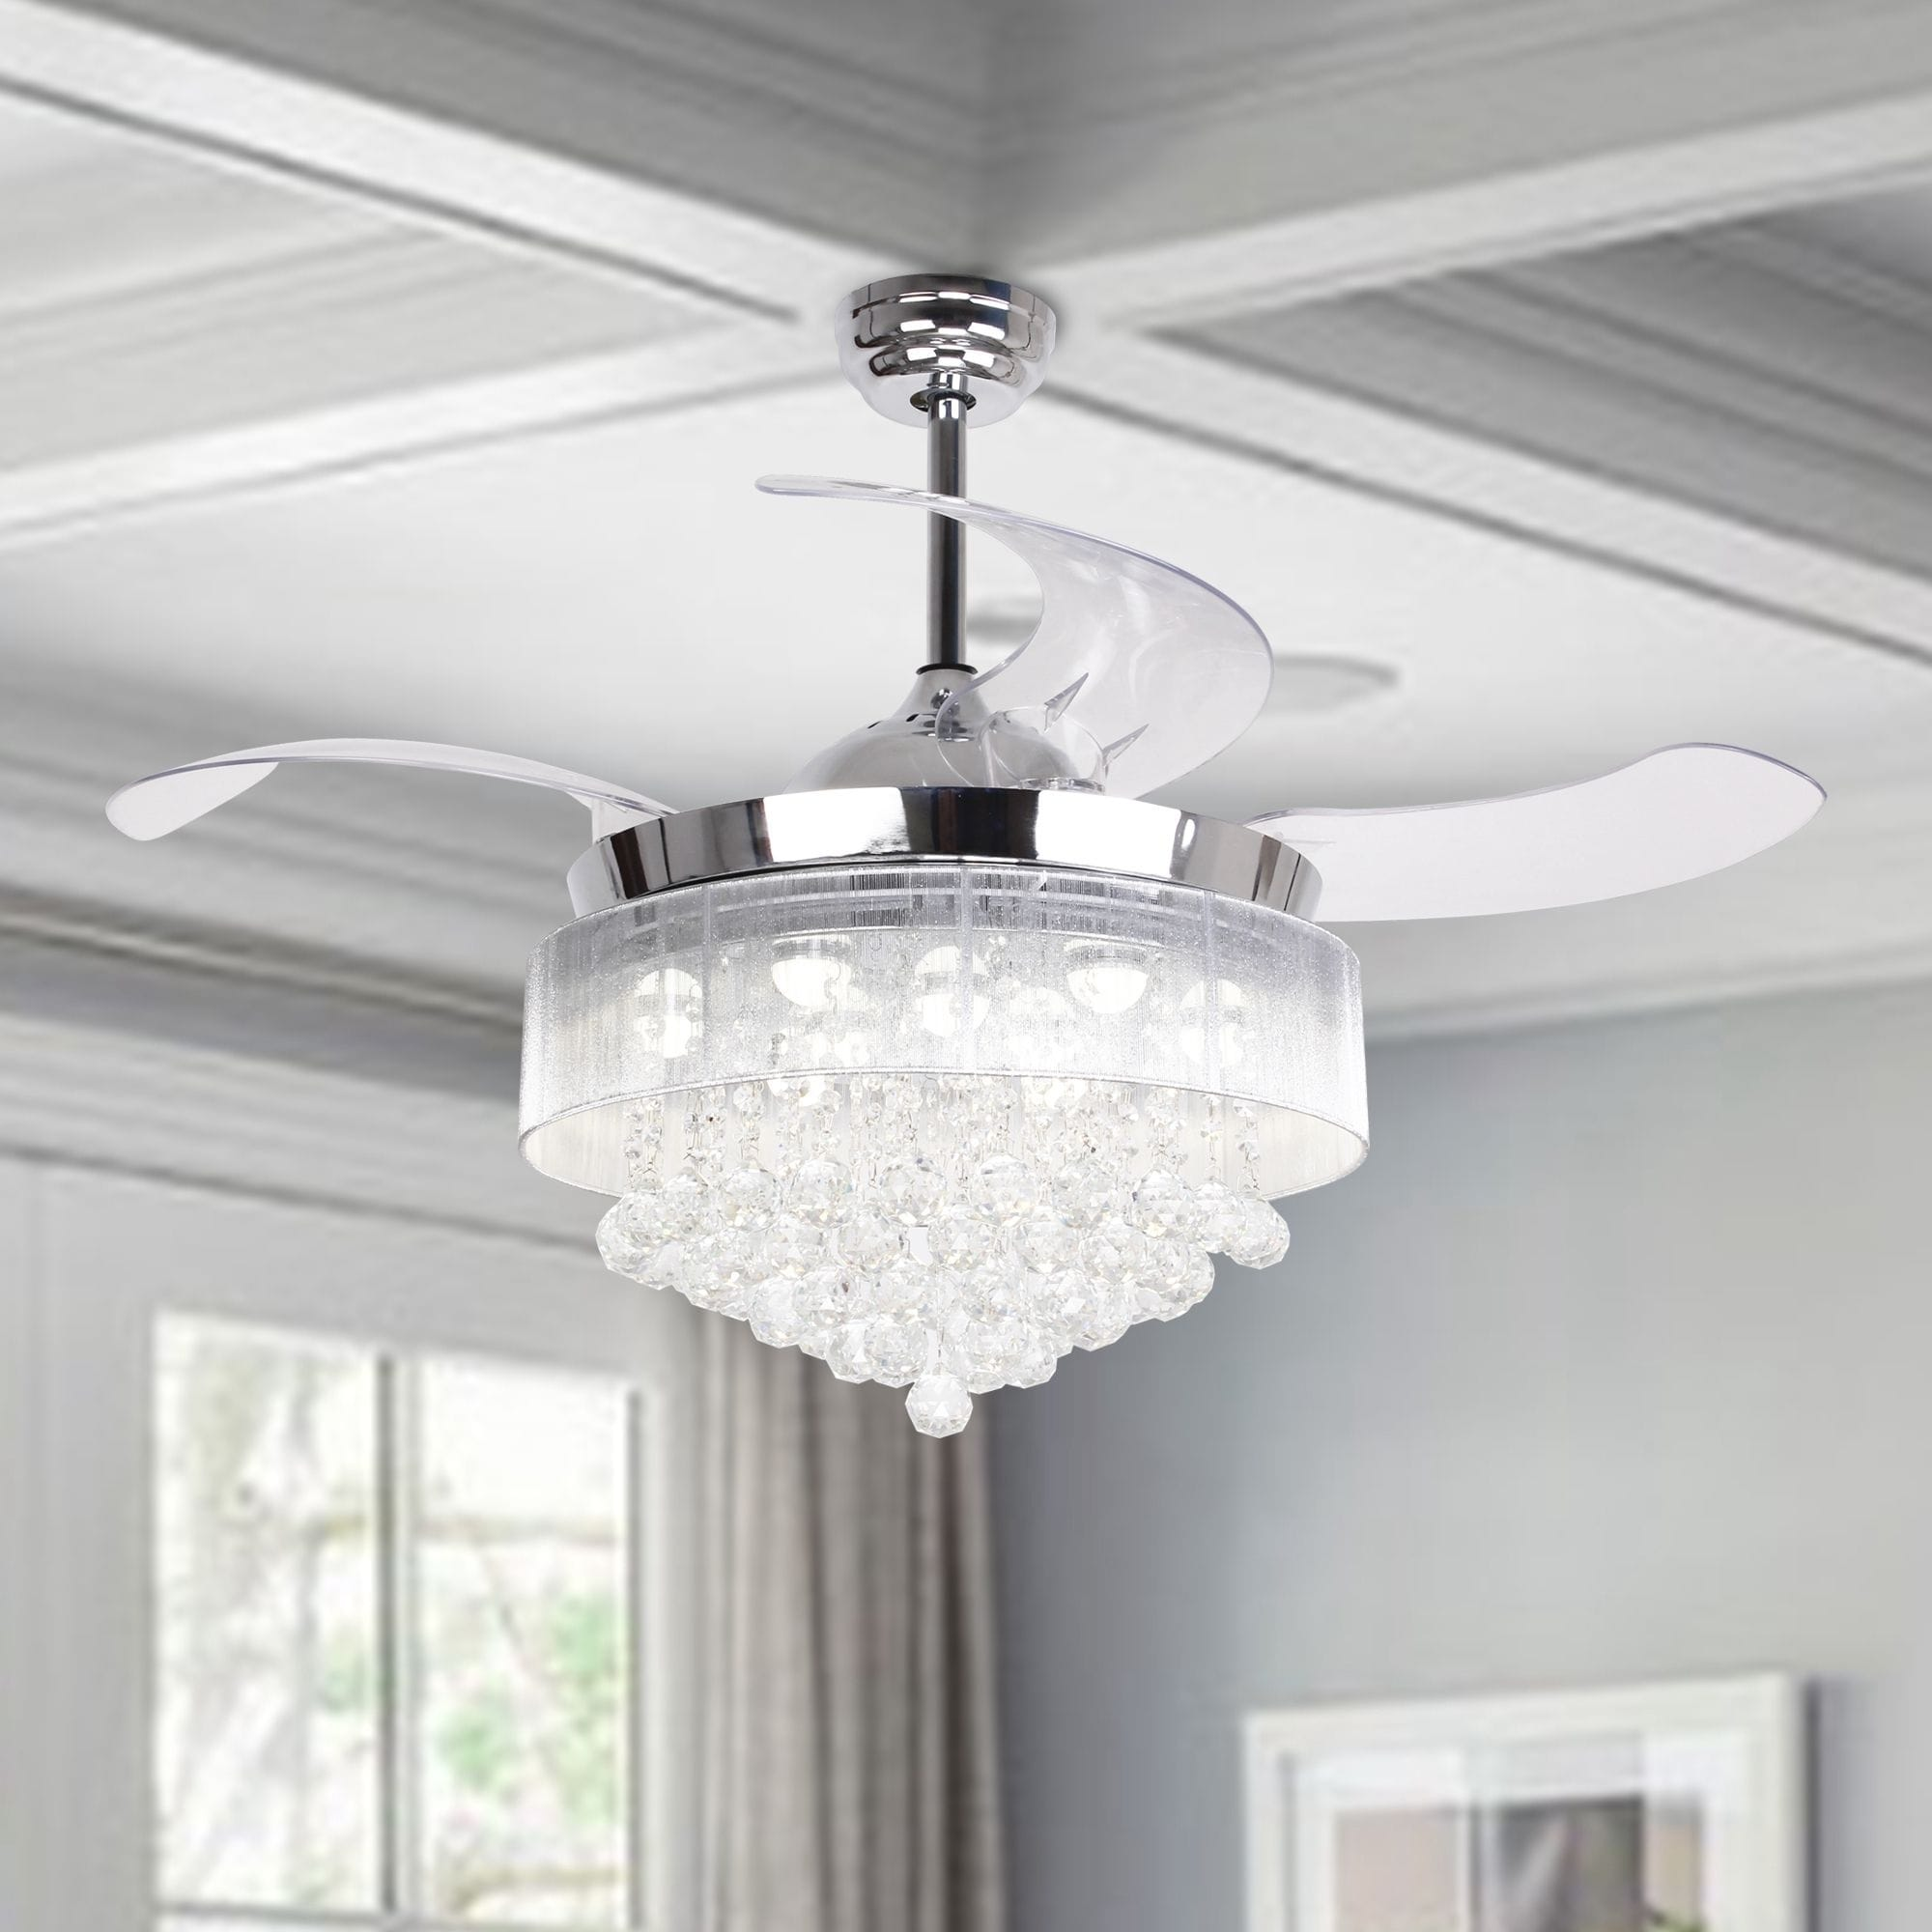 46 Inch Crystal Led Ceiling Fan 4 Blades Remote And Light Kit Included 46 In Overstock 19437273